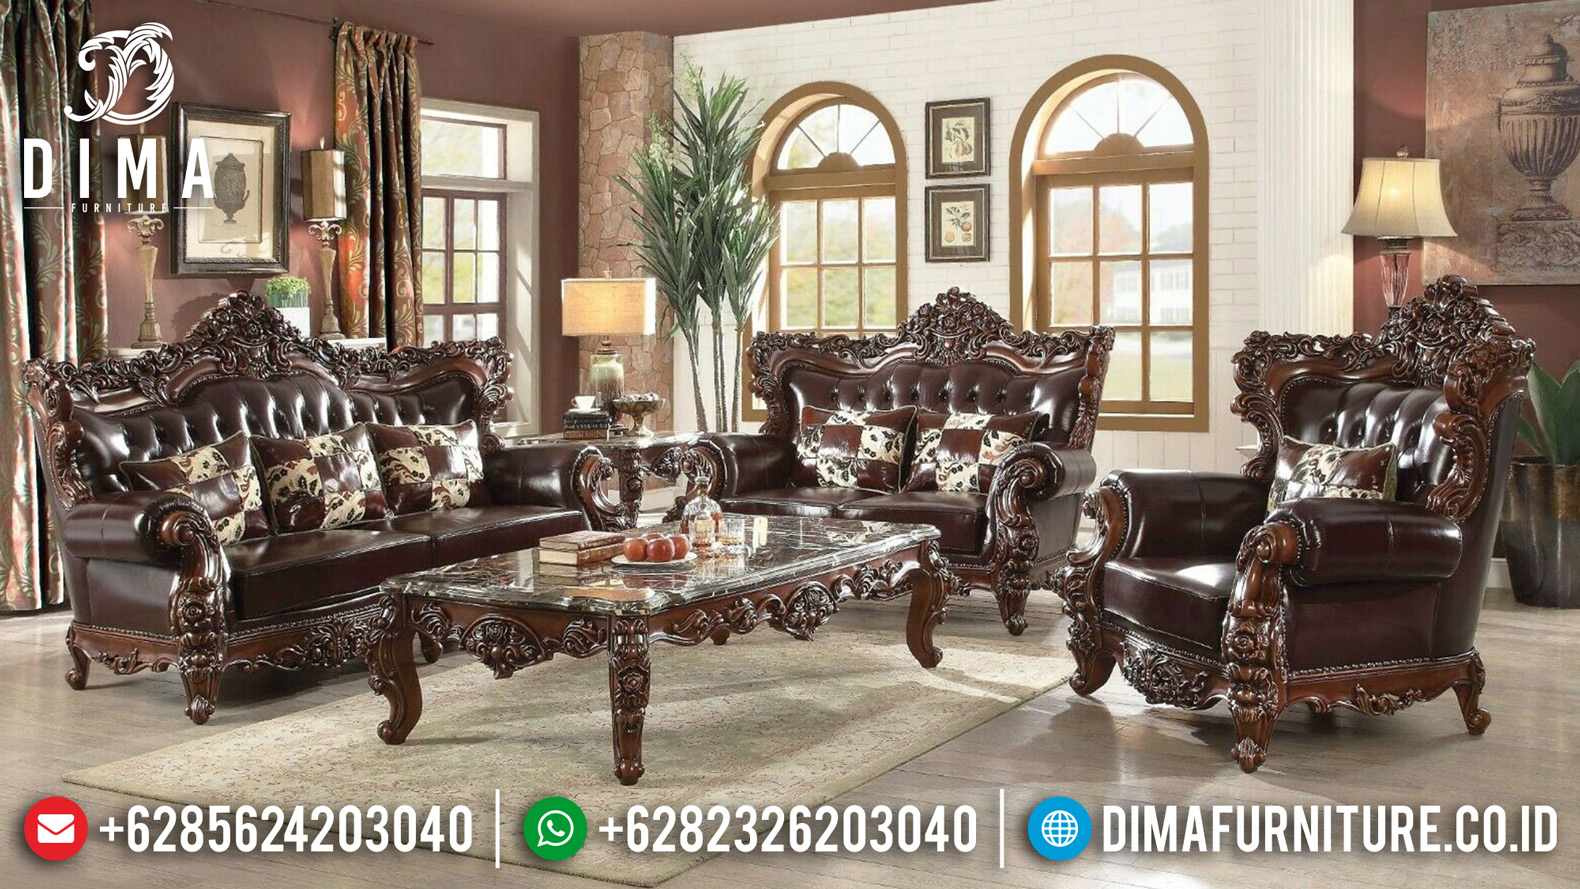 Model Sofa Tamu Jepara 2019-2020 006 Dima Furniture Jepara